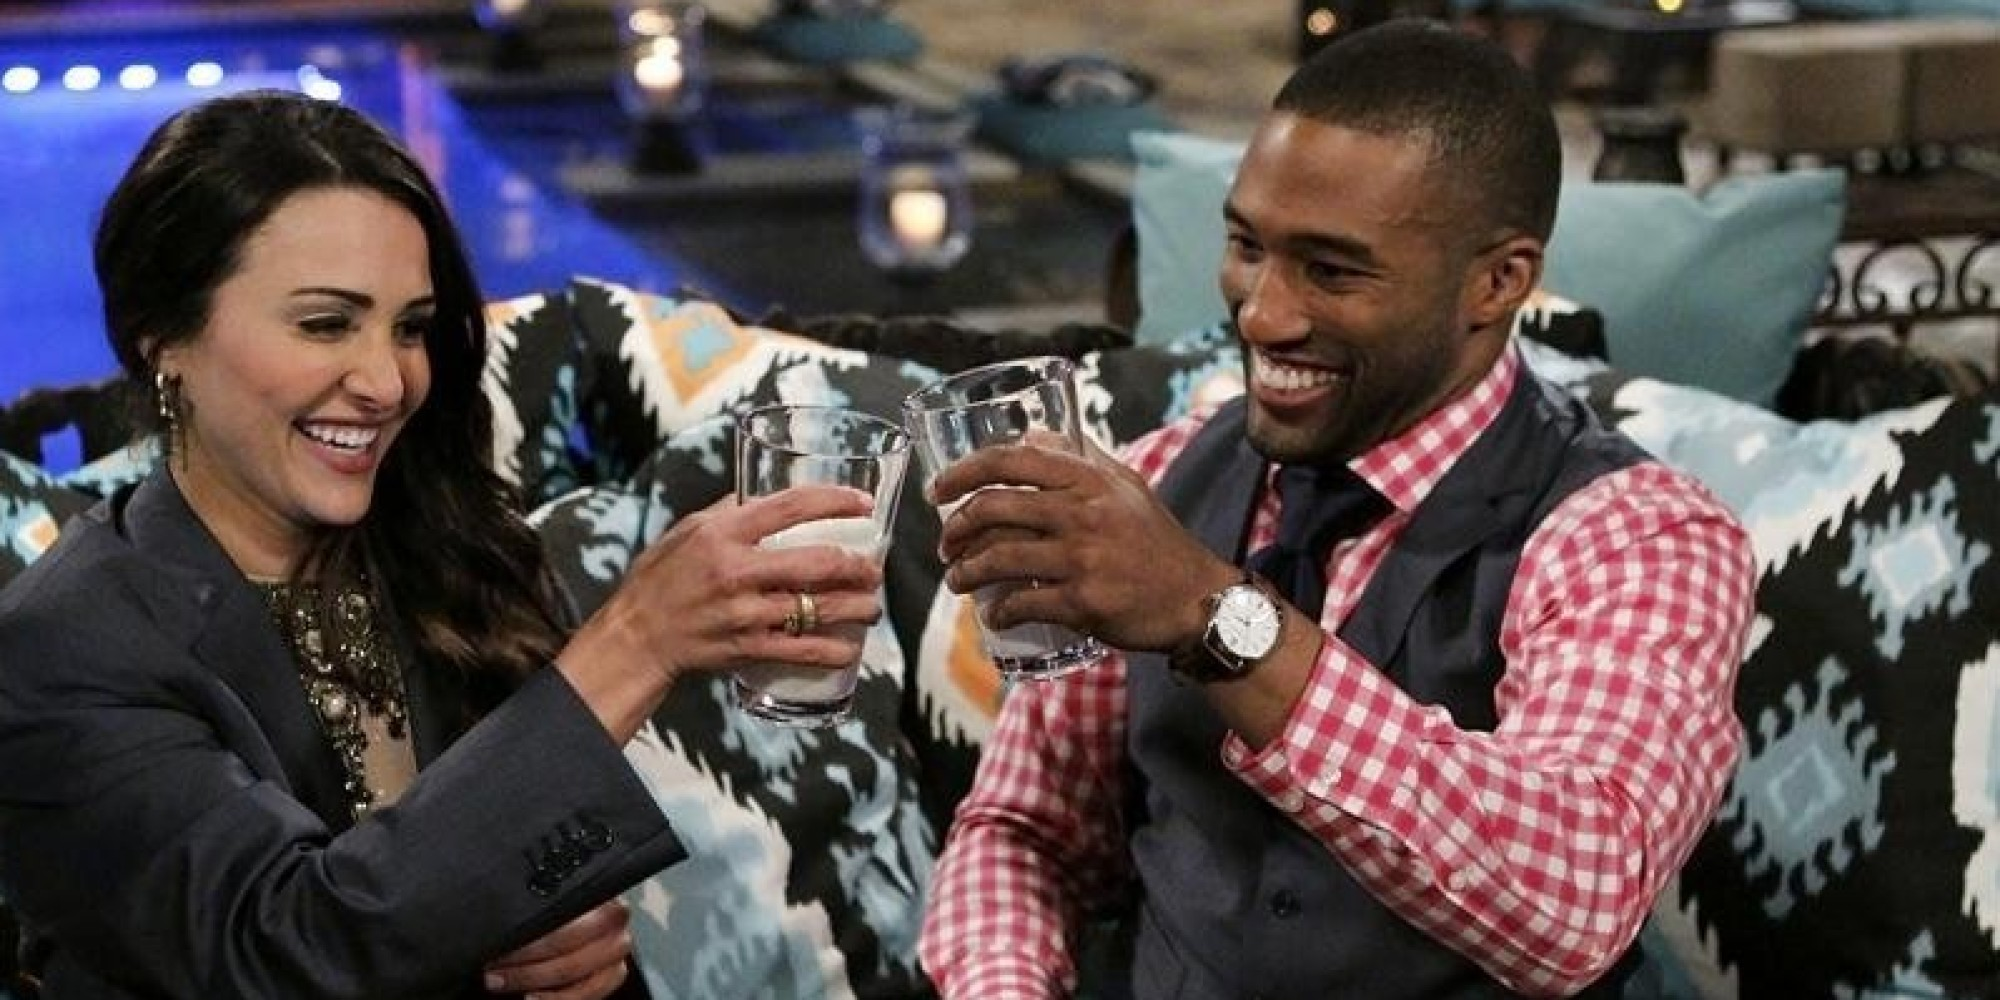 Farewell To Marquel The Man Who Forced Bachelorette Talk About Race